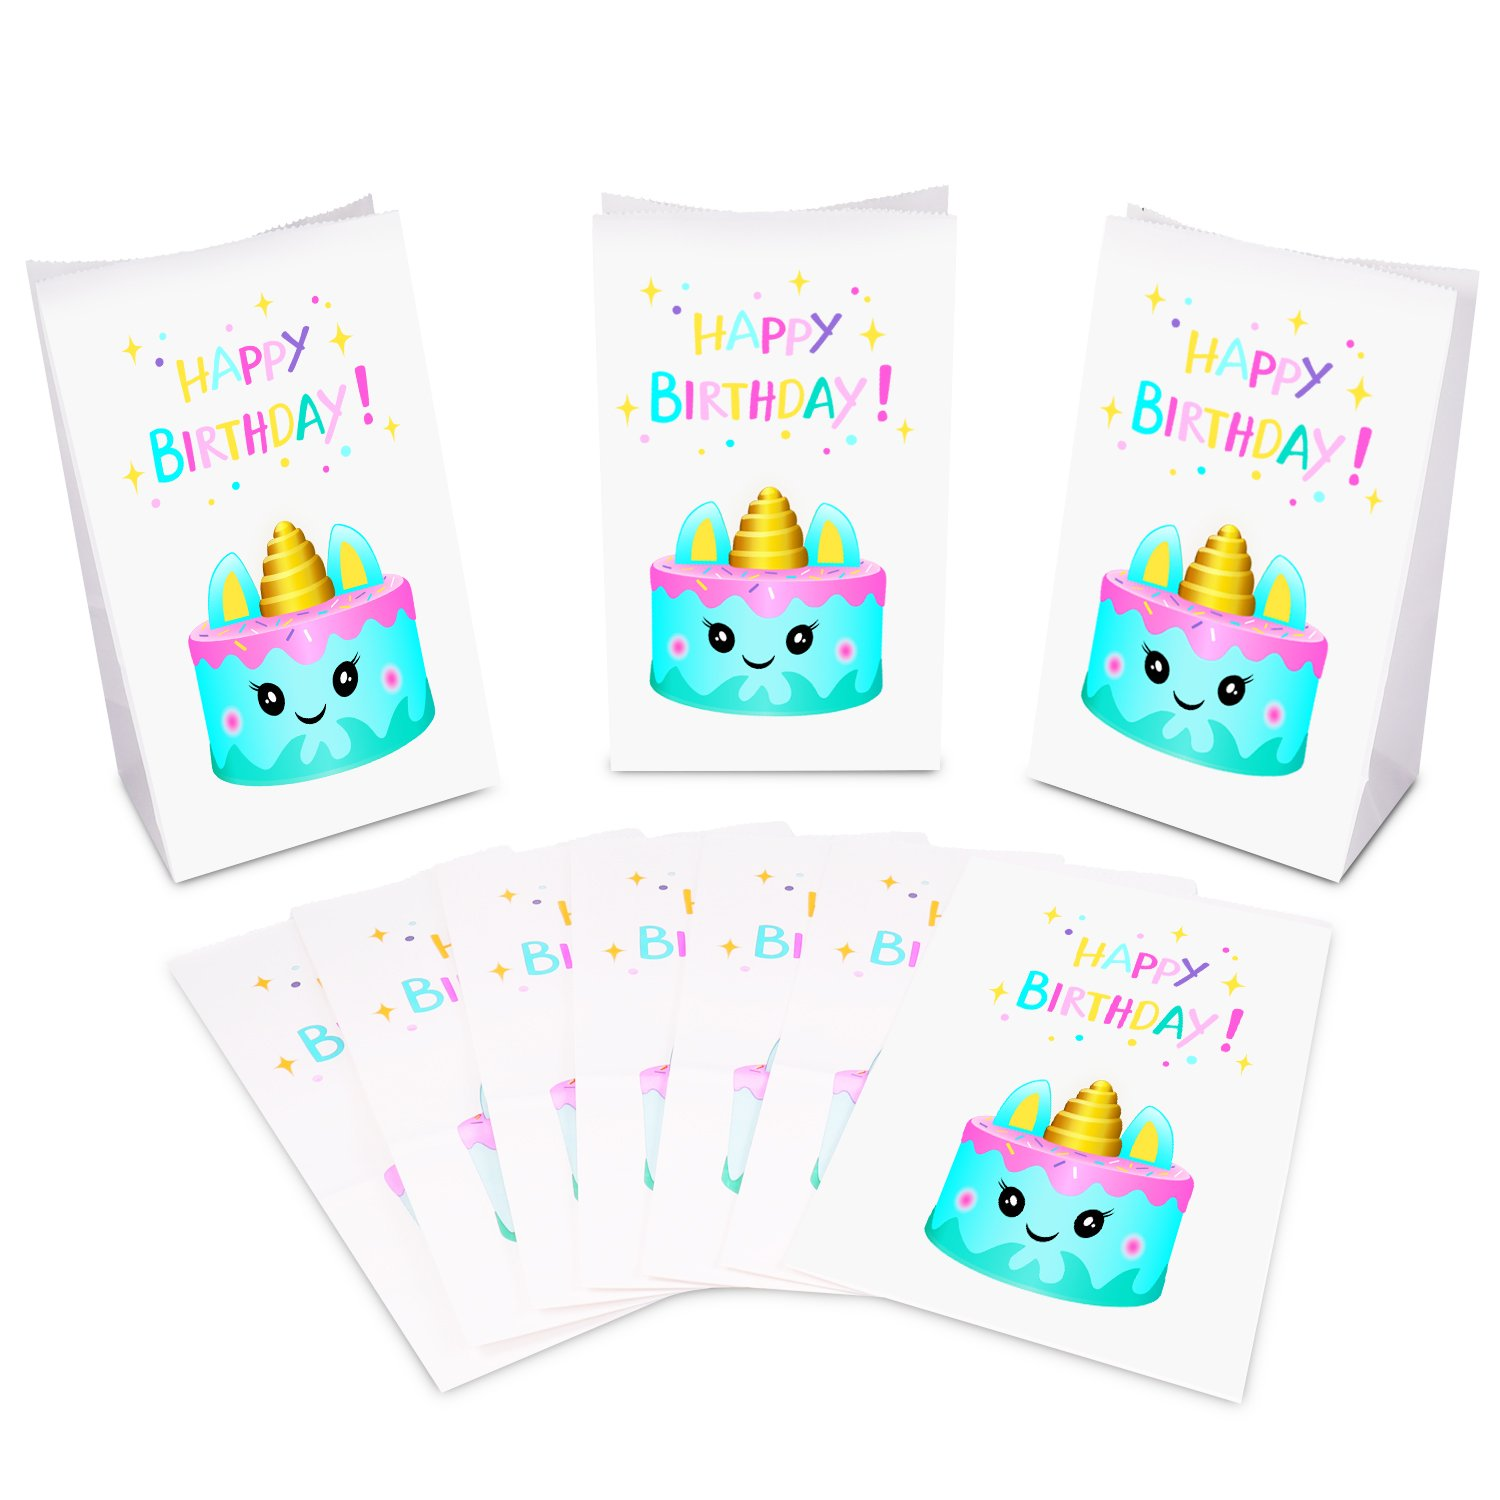 Squishy Toy Favors Treat bags Birthday Party Supplies for Kids Unicorn Themed Party Unicorn Cake Design,/Unicorn Paper Bags Devoltsom Unicorn Party Bags Pack of 24